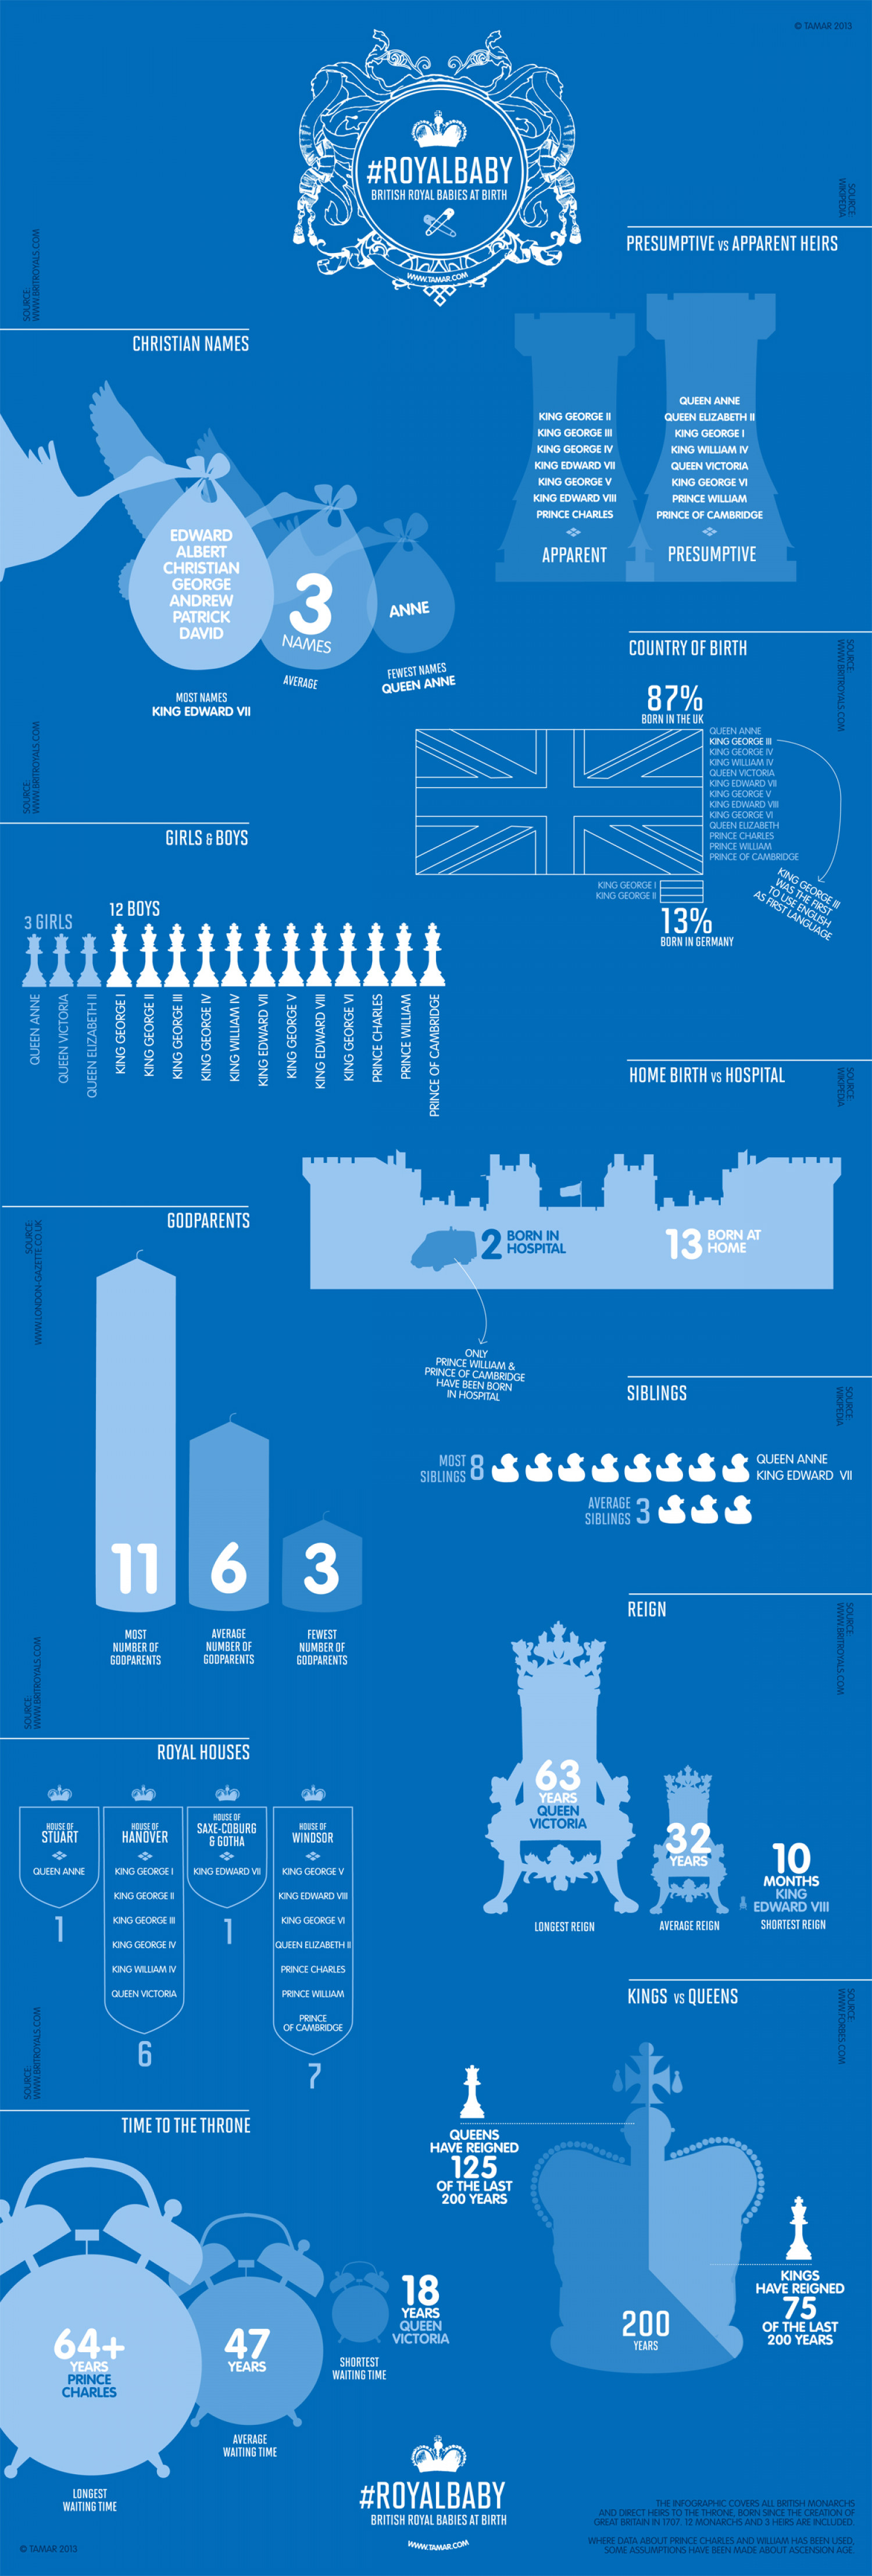 #RoyalBaby - British royal babies at birth Infographic